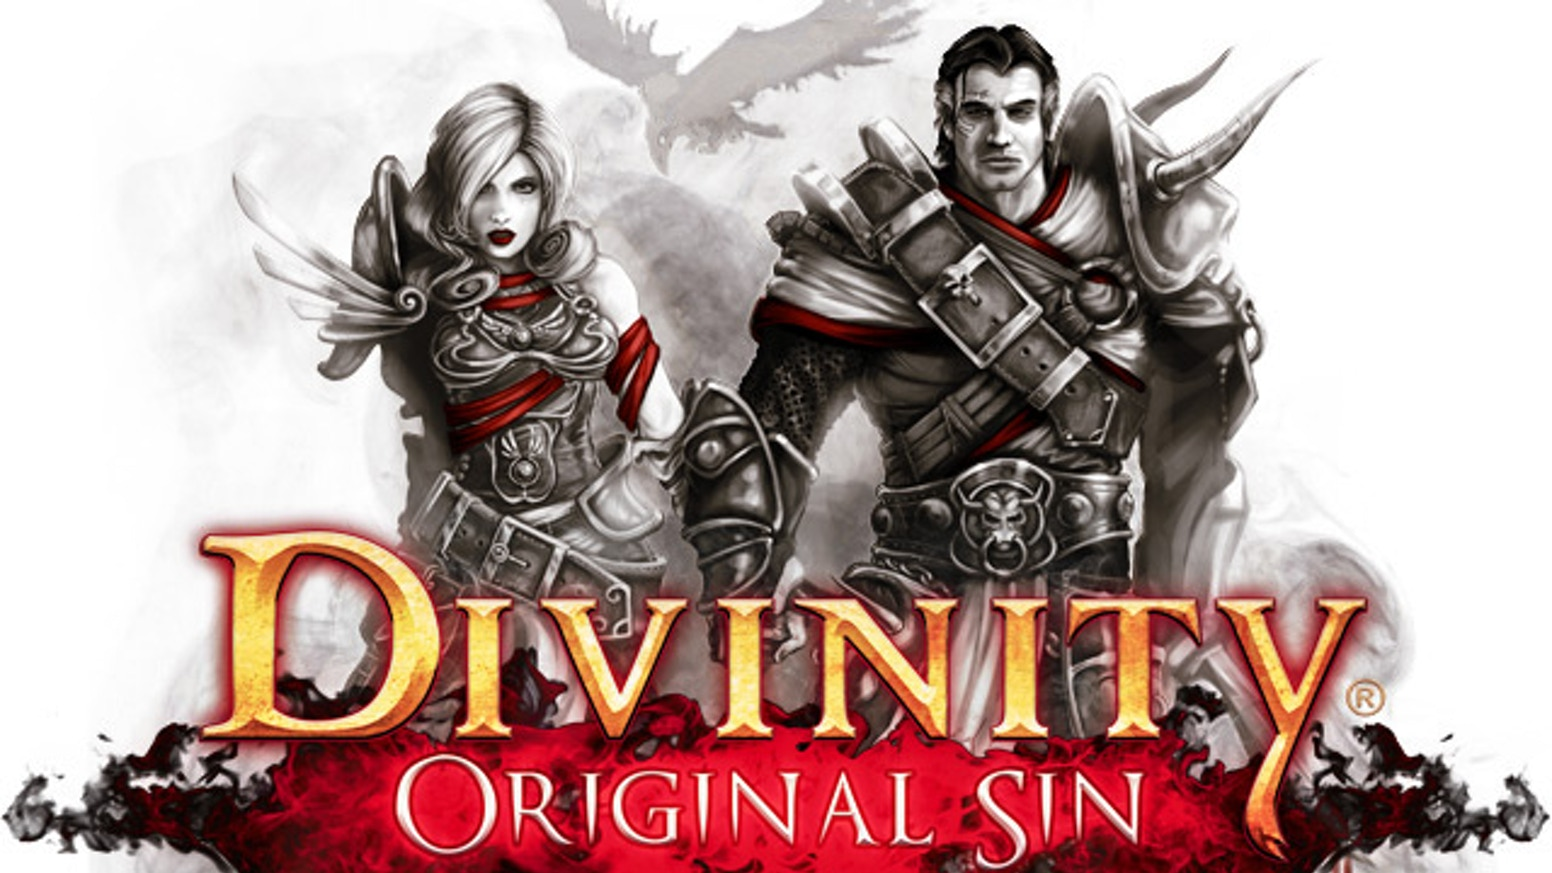 Divinity Original Sin is an old-school cRPG with new ideas & modern execution, will release this year. Funded by fantastic backers!